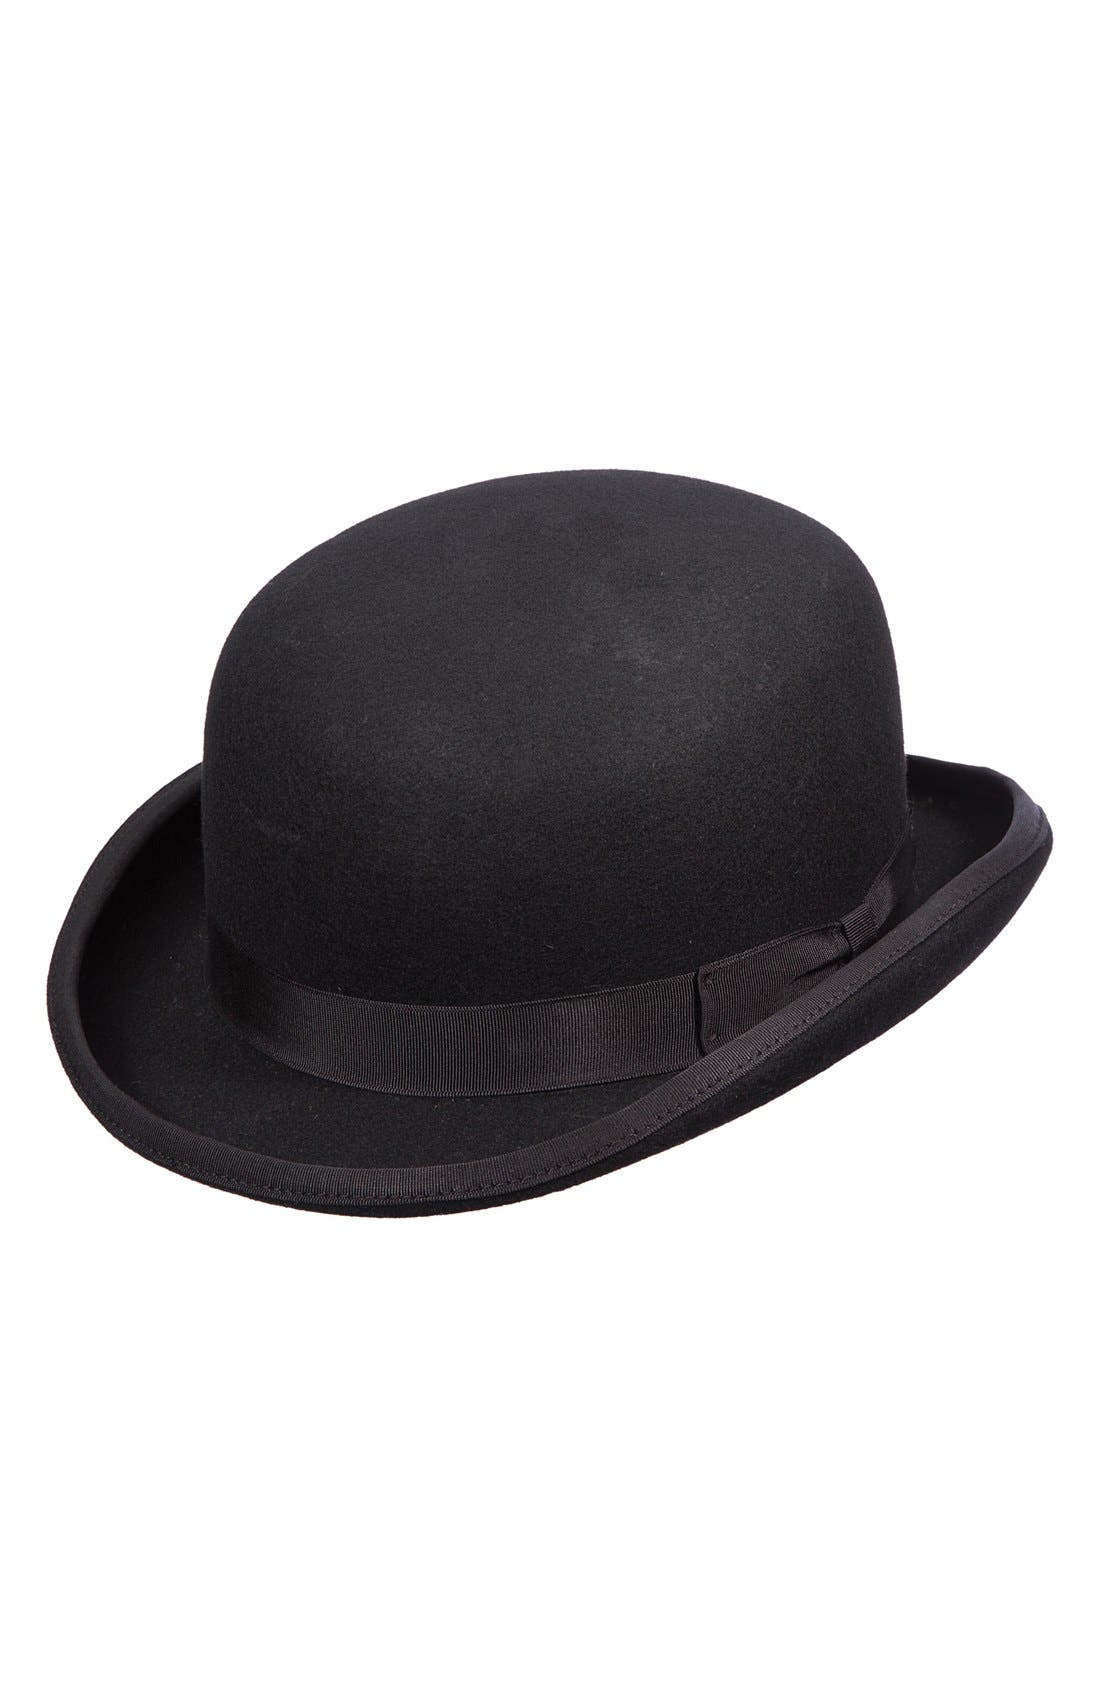 Victorian Men's Hats- Top Hats, Bowler, Gambler Mens Scala Wool Felt Bowler Hat - Black $51.00 AT vintagedancer.com